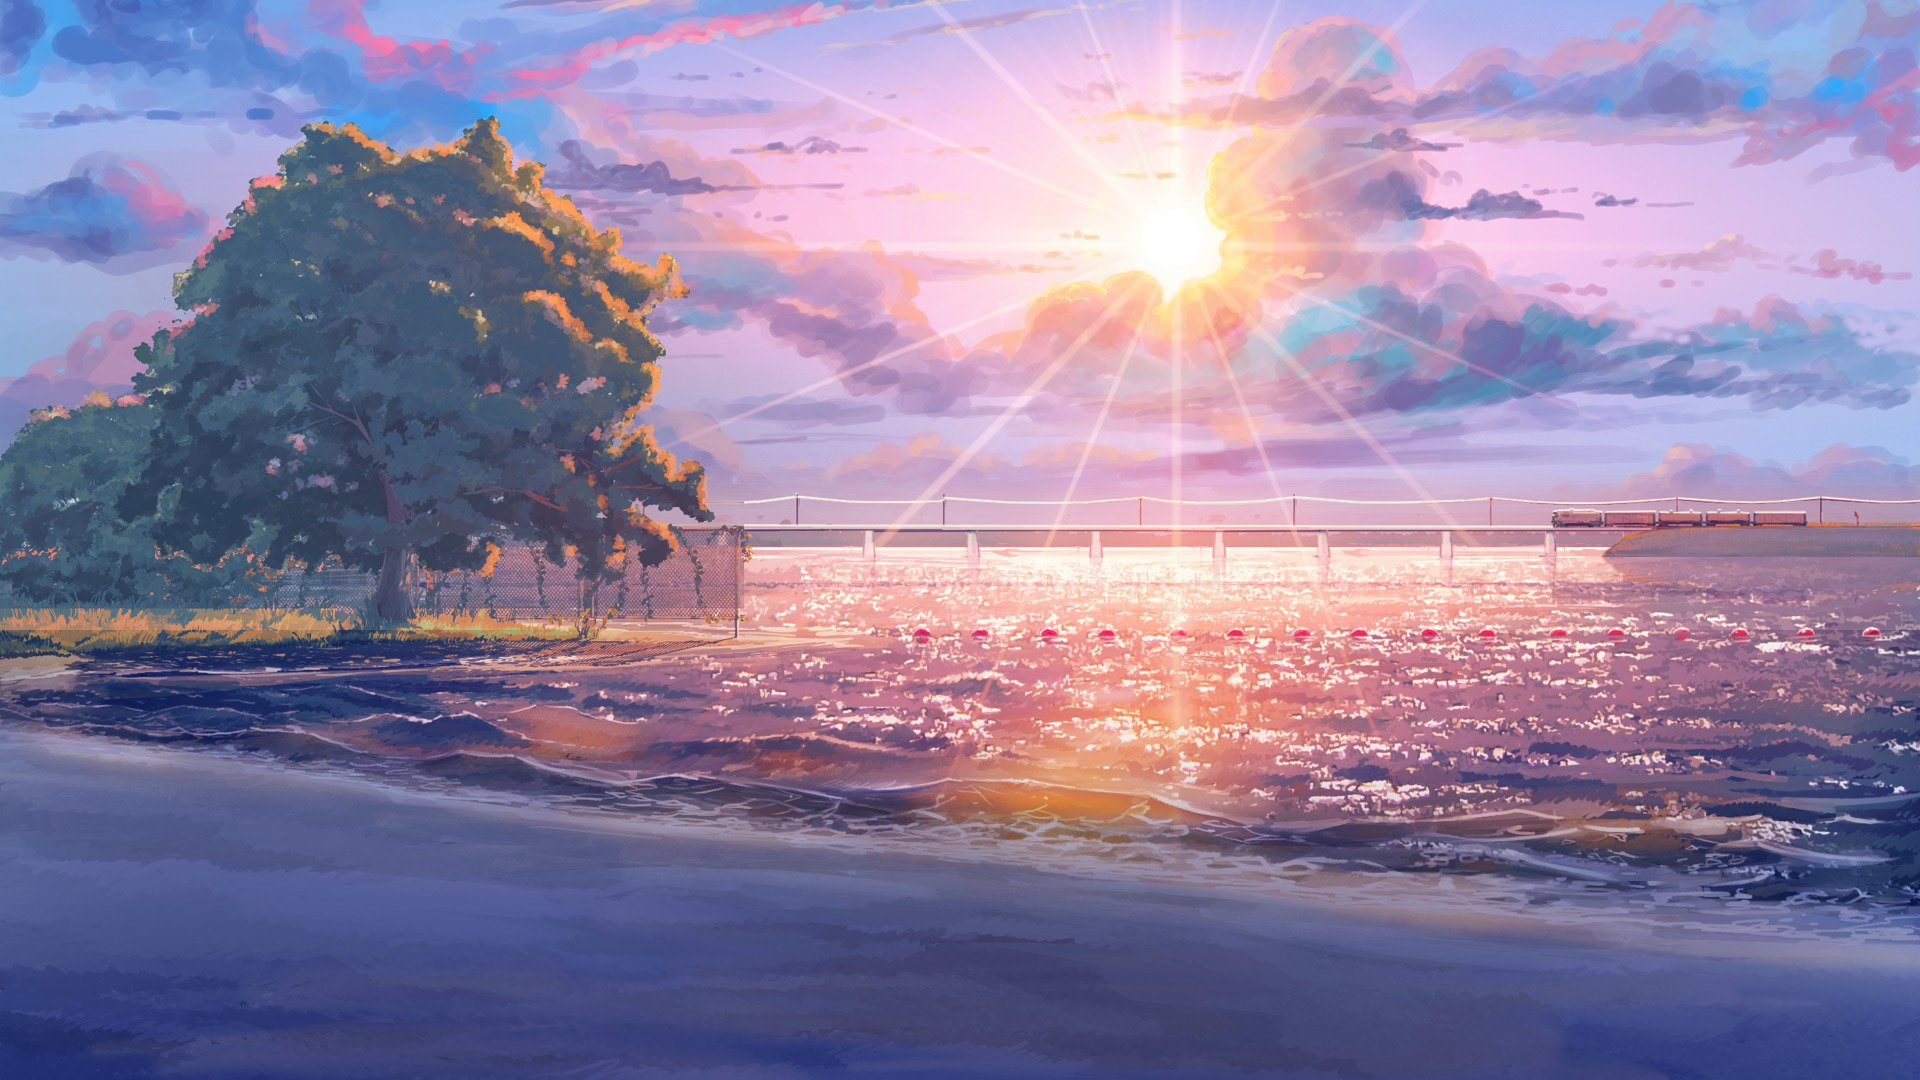 Beach Endless Summer anime sun tree sky cloud amazing ...